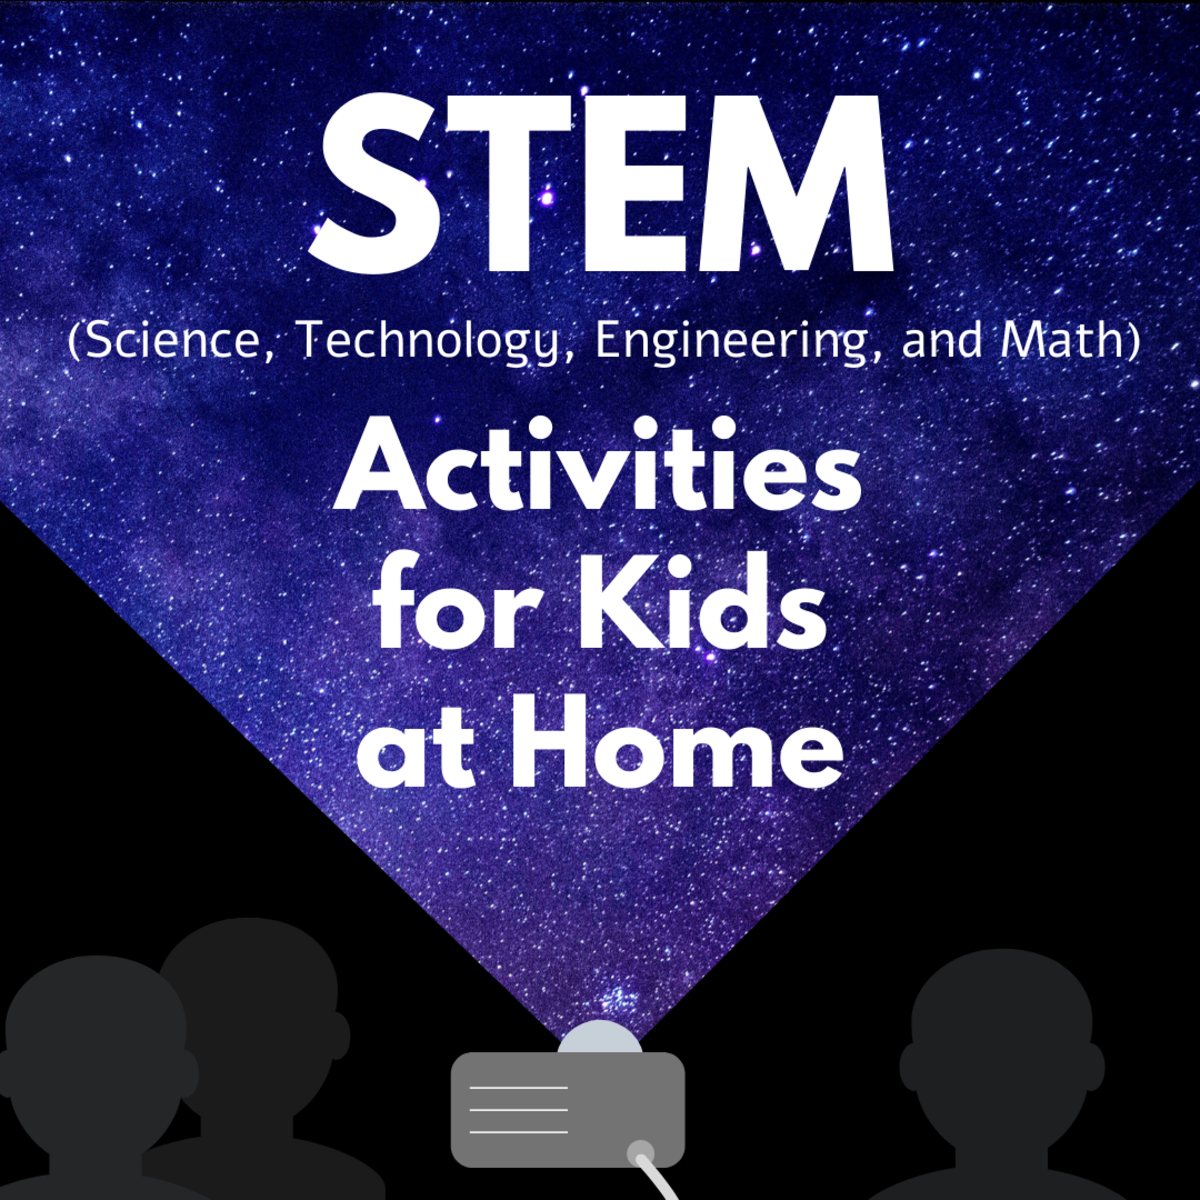 Get ideas for 6 STEM/STEAM activities you can do with your kids at home.